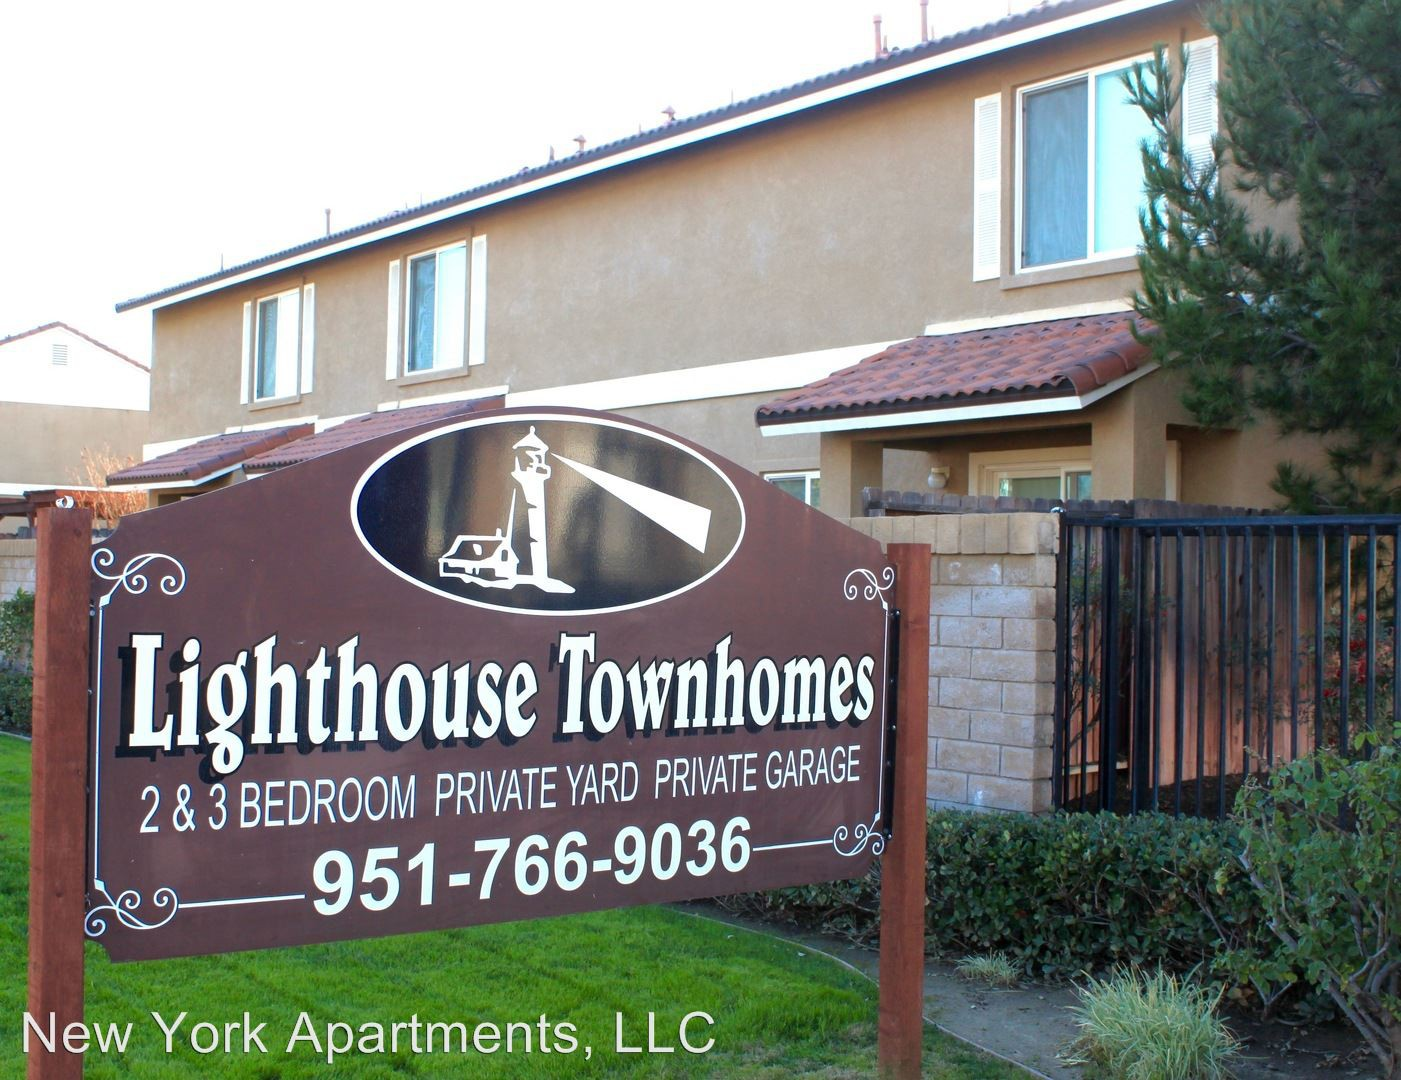 Apartments Near MSJC Lighthouse Townhomes for Mt. San Jacinto College Students in San Jacinto, CA